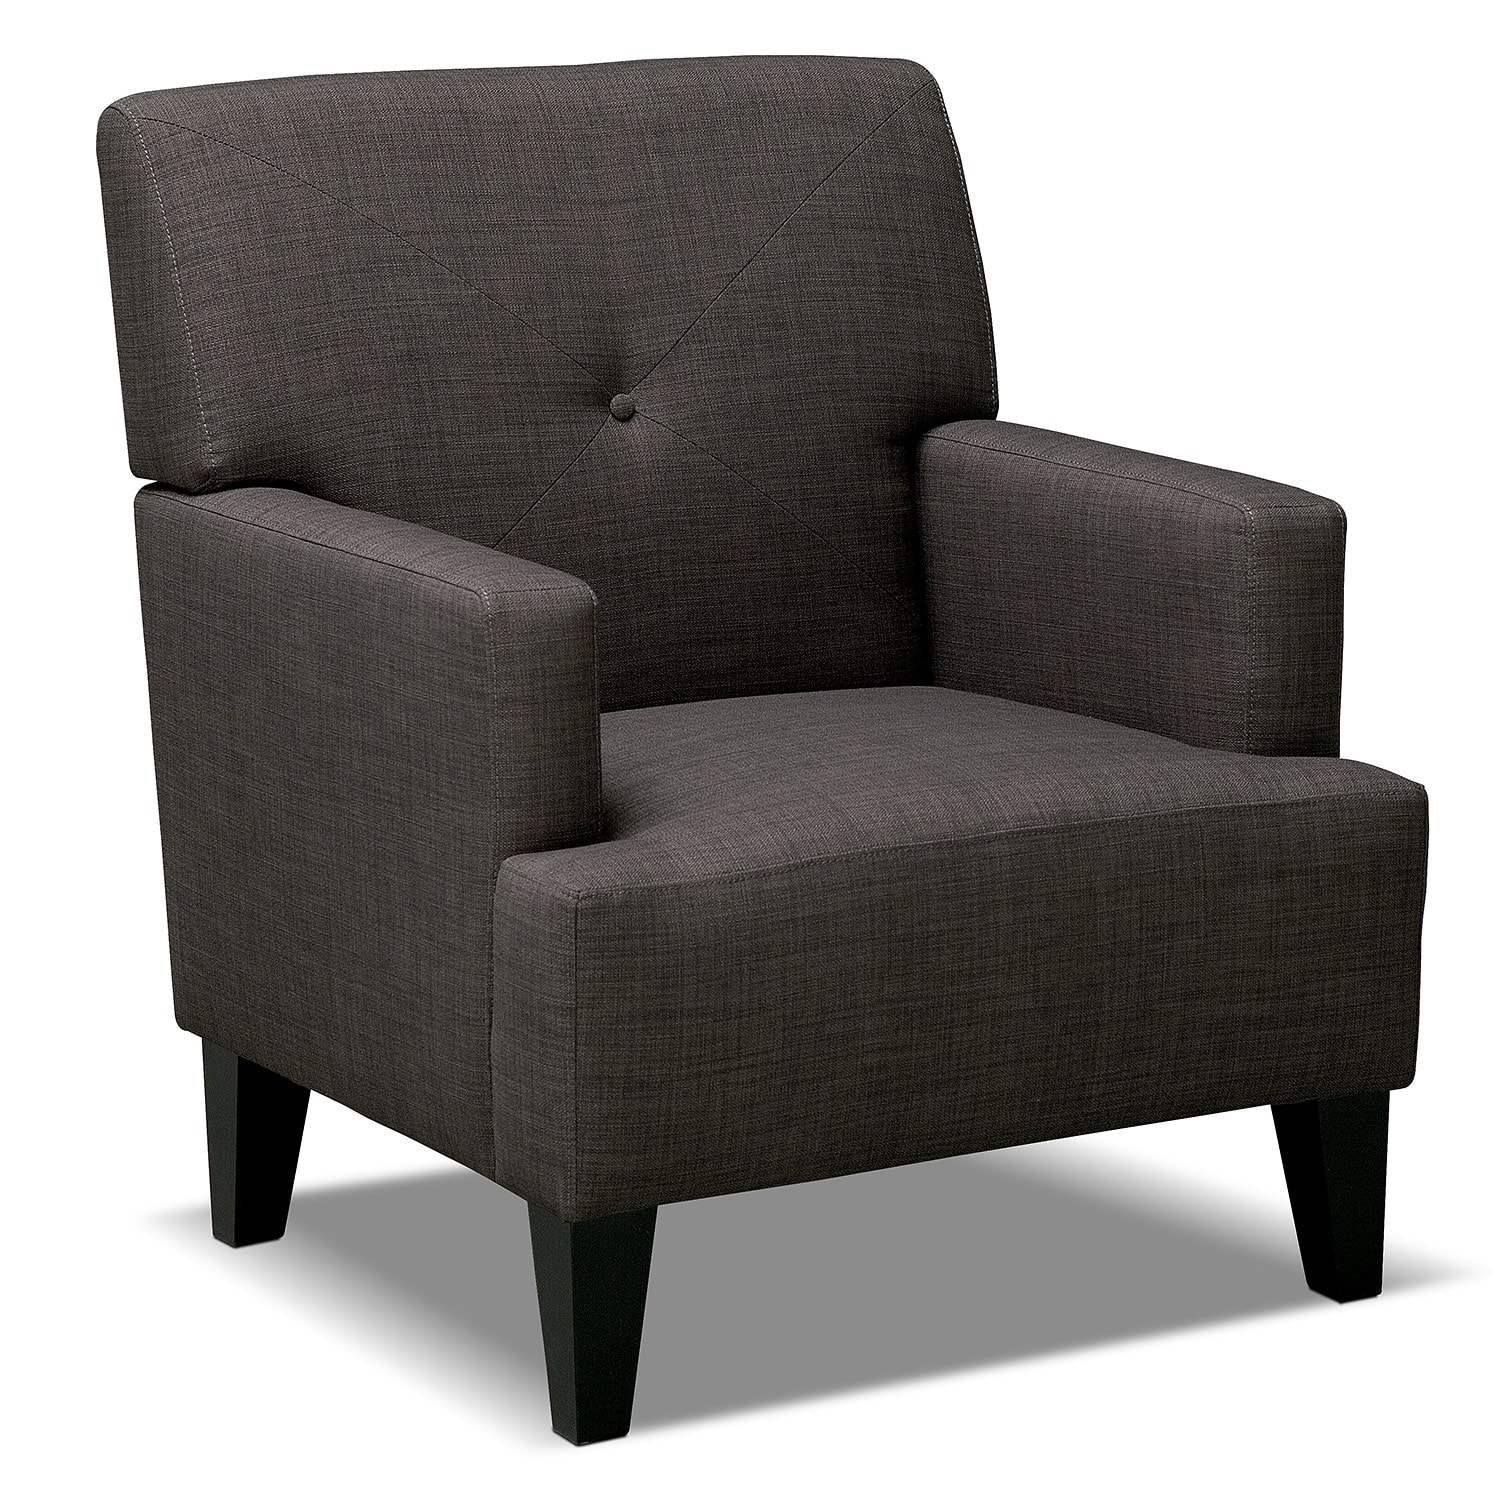 Avalon accent chair charcoal value city furniture for Accent furniture